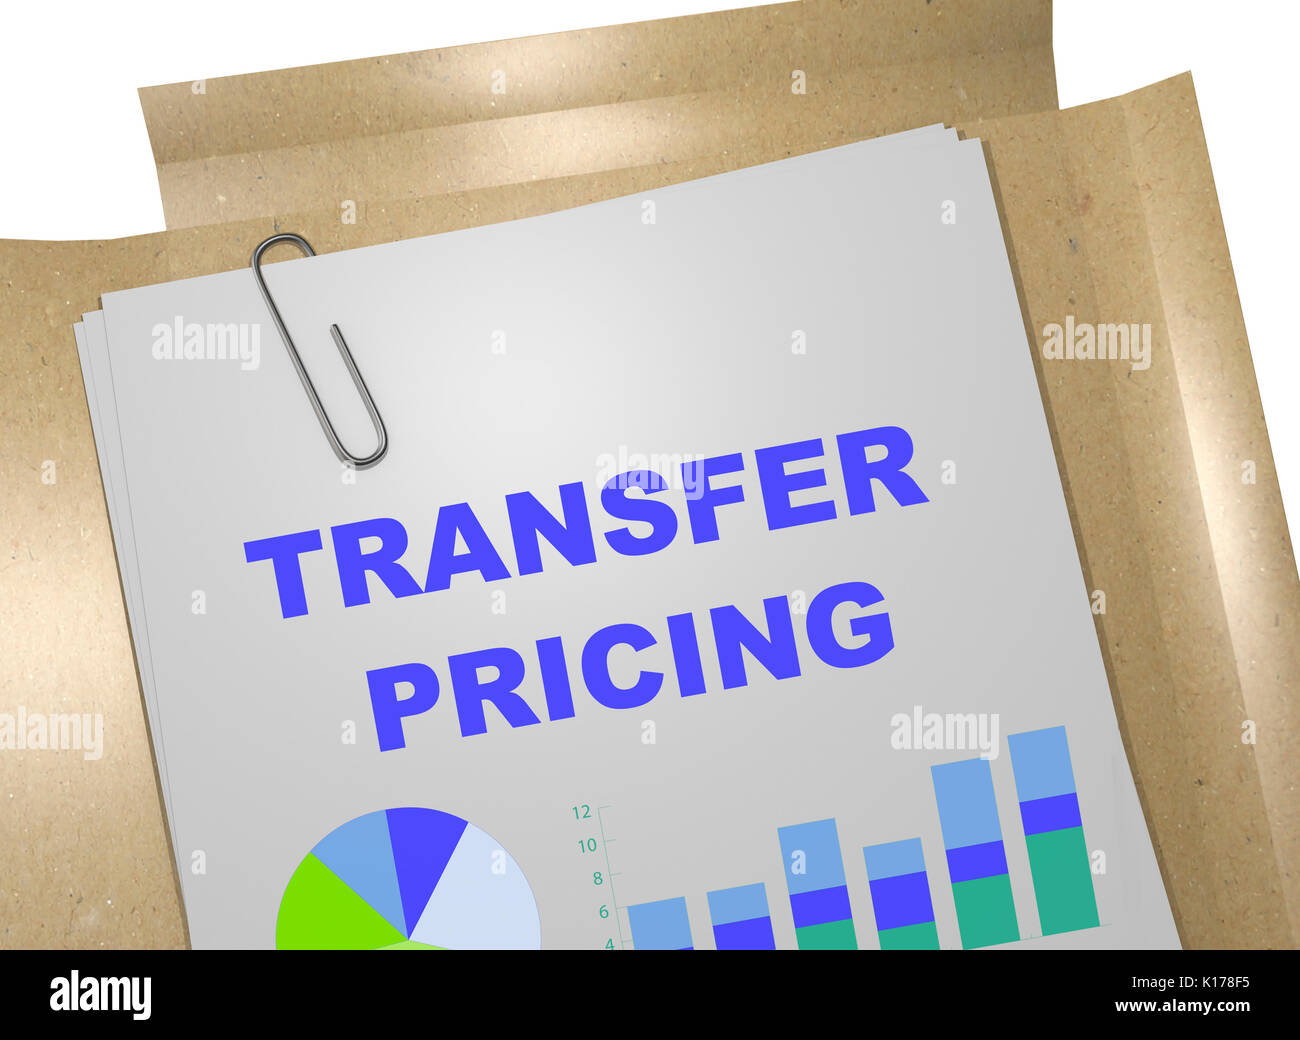 3D illustration of 'TRANSFER PRICING' title on business document. Business concept. - Stock Image